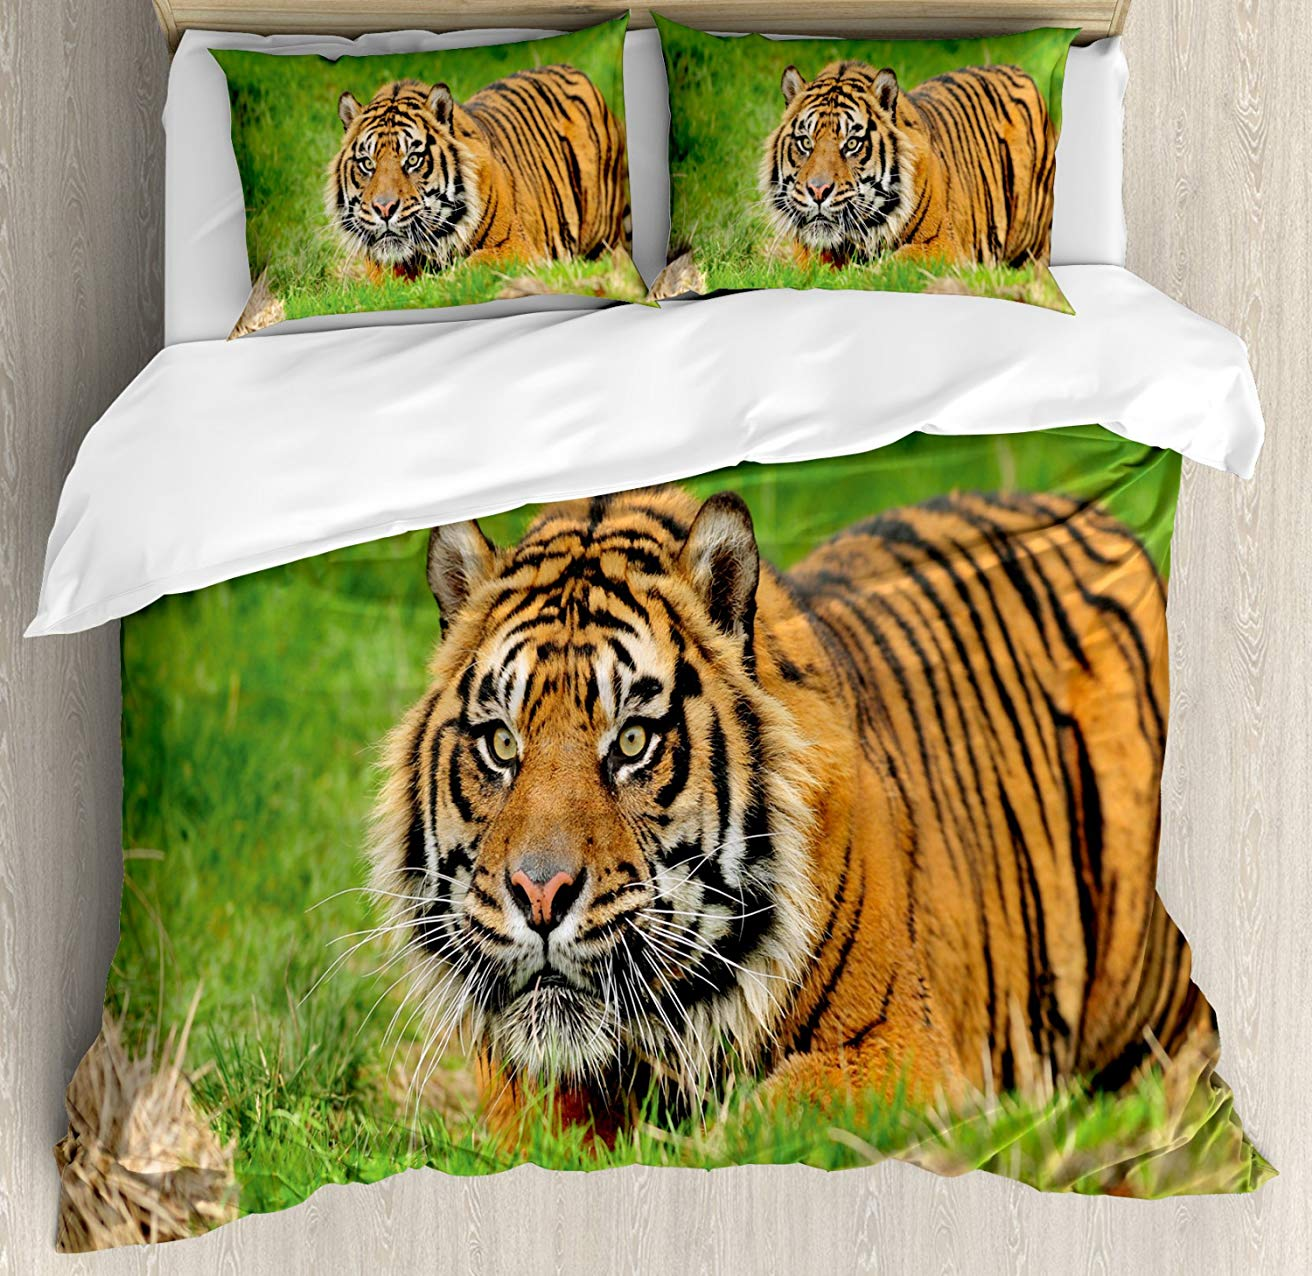 Tiger Duvet Cover Set  Sumatran Feline Hiding in Ambush while Stalking Its Prey Moments Before Attack 3 Piece Bedding SetTiger Duvet Cover Set  Sumatran Feline Hiding in Ambush while Stalking Its Prey Moments Before Attack 3 Piece Bedding Set